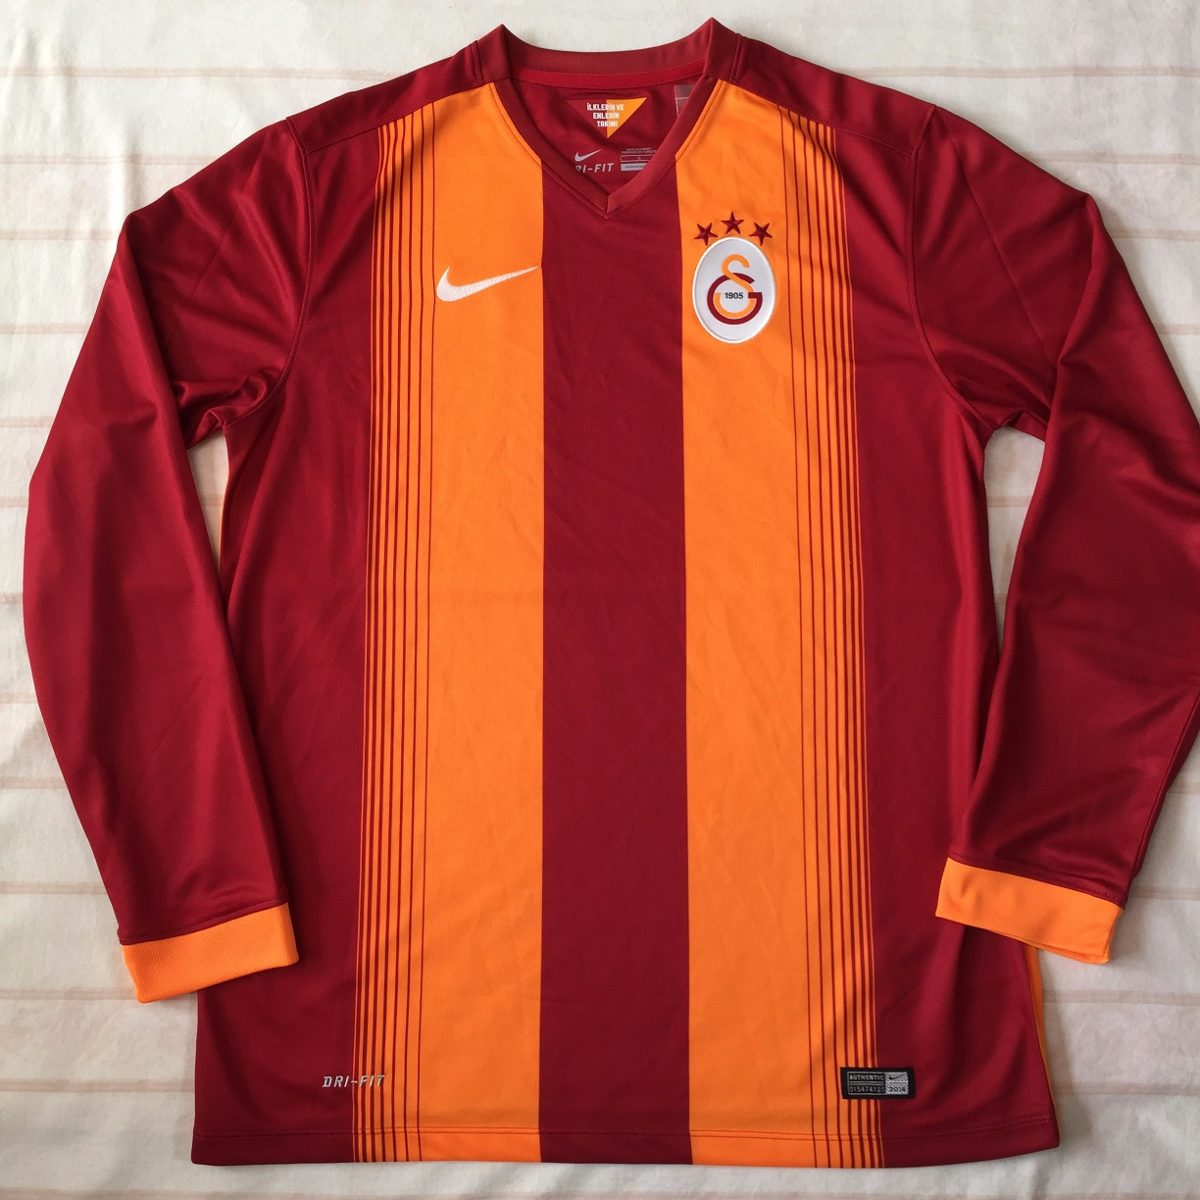 9d639949ca 647855-606 Camisa Nike Galatasaray Home 14 15 G Ml Fn1608 - R  1.499 ...